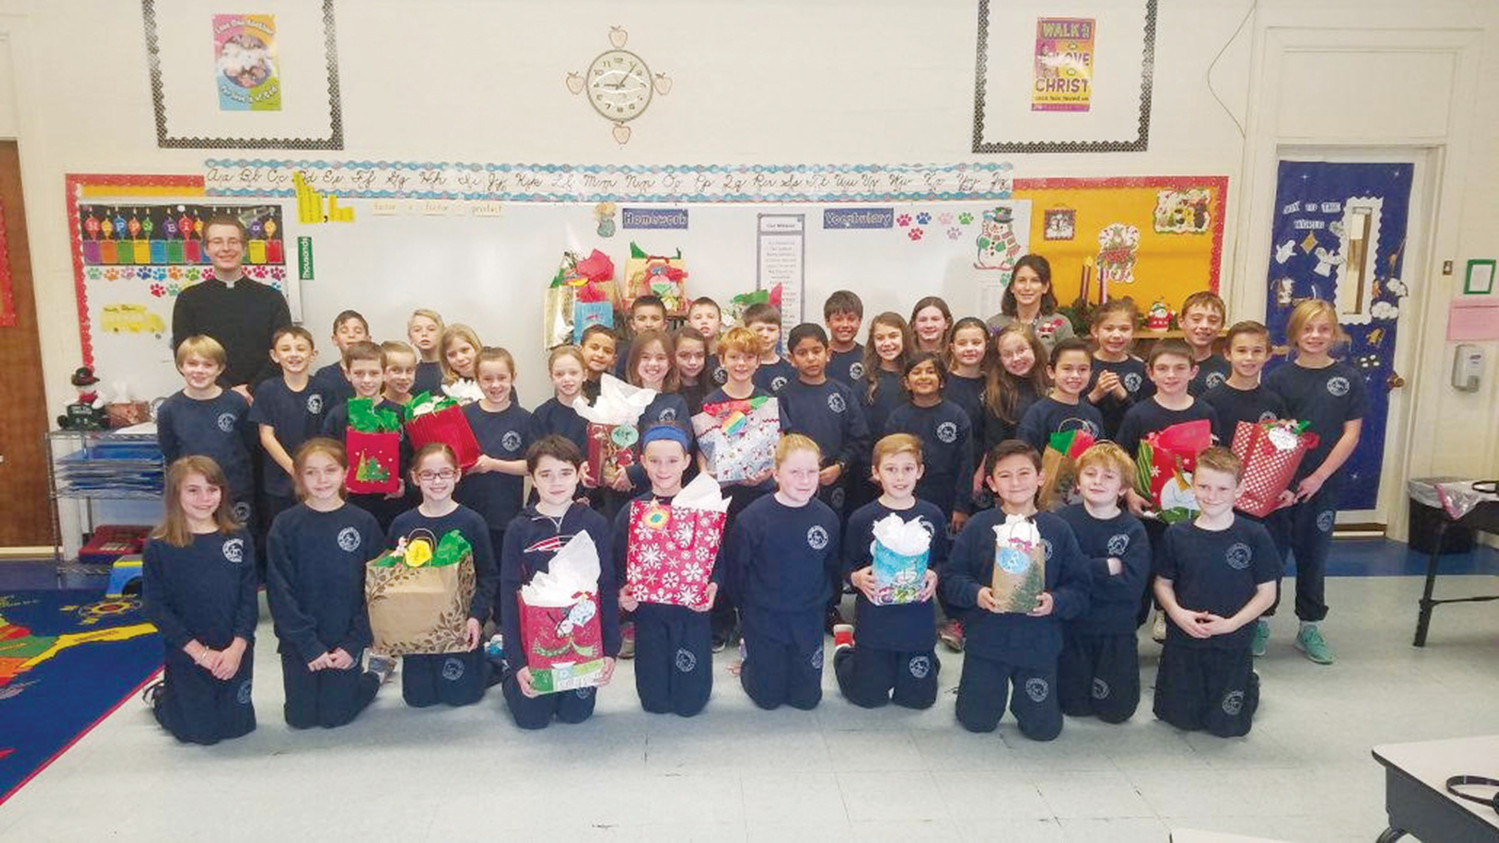 Rhird-graders gather with Associate Pastor Father Joshua Barrow and Teacher Jill Hackett with a collection of Christmas presents for the residents. Jeanne Perretta is missing from the photo.